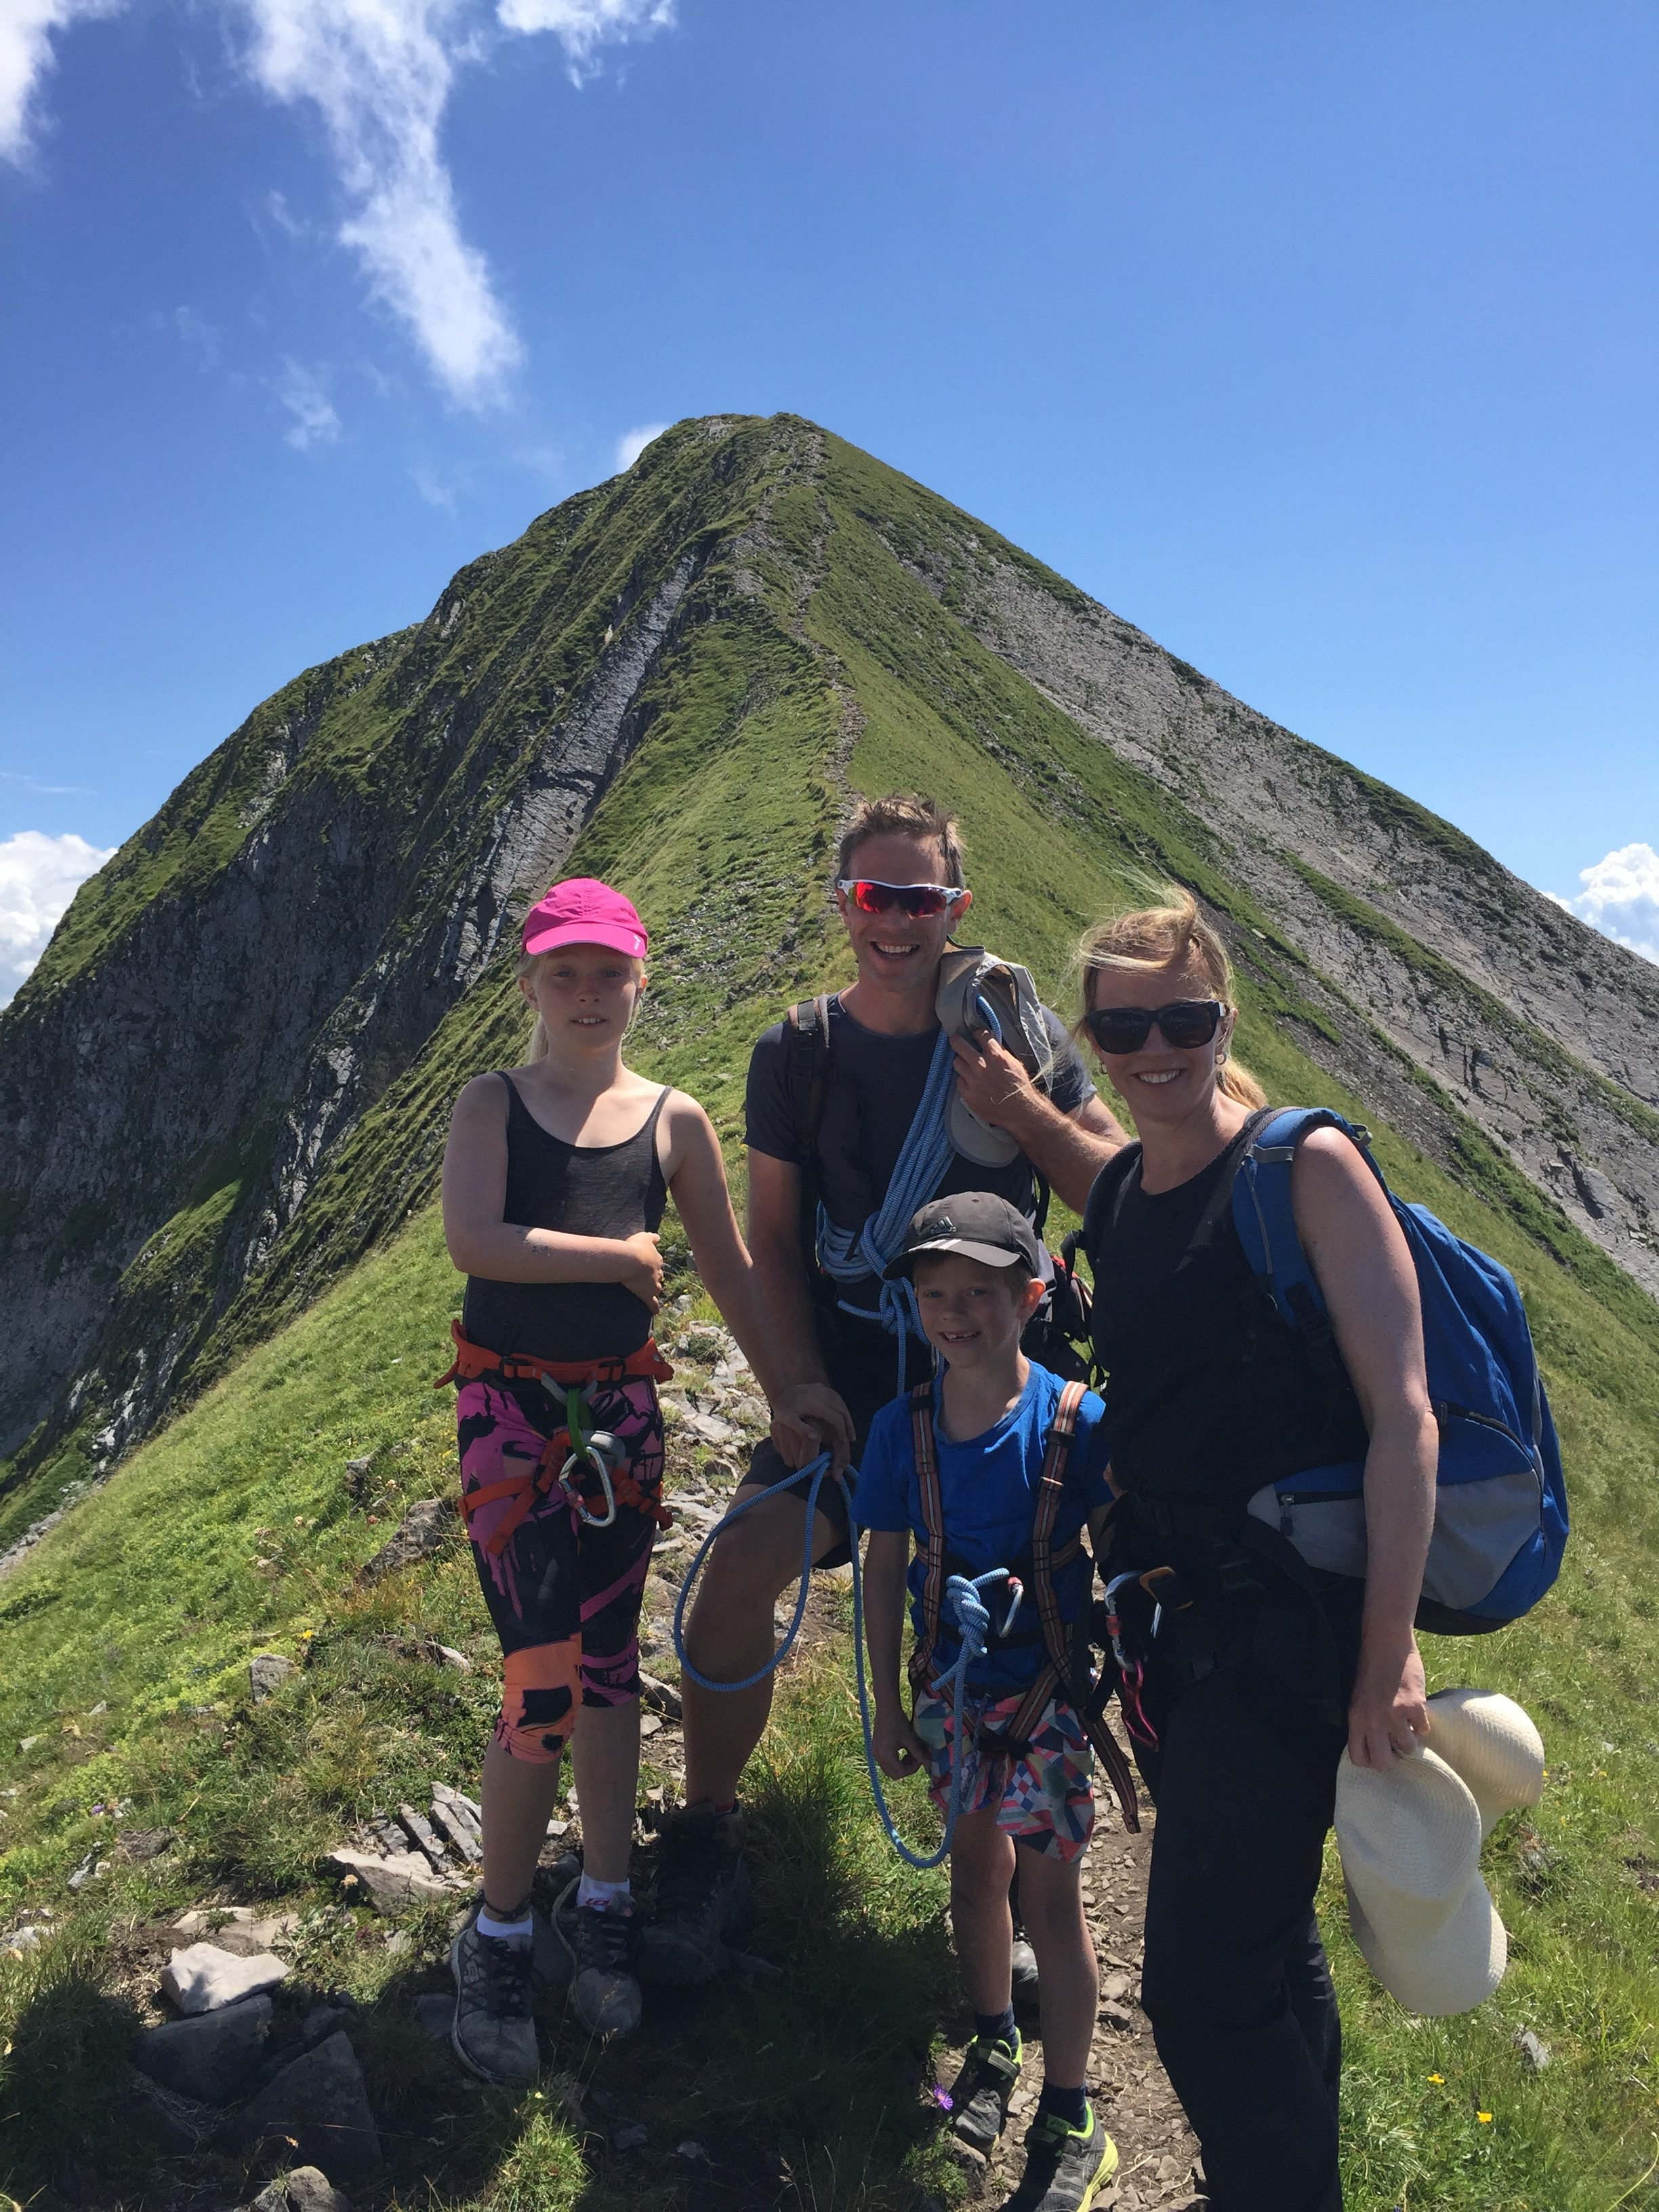 Bianca, Paul, Benjamin and Fiona climbing Mt Sharvin in France